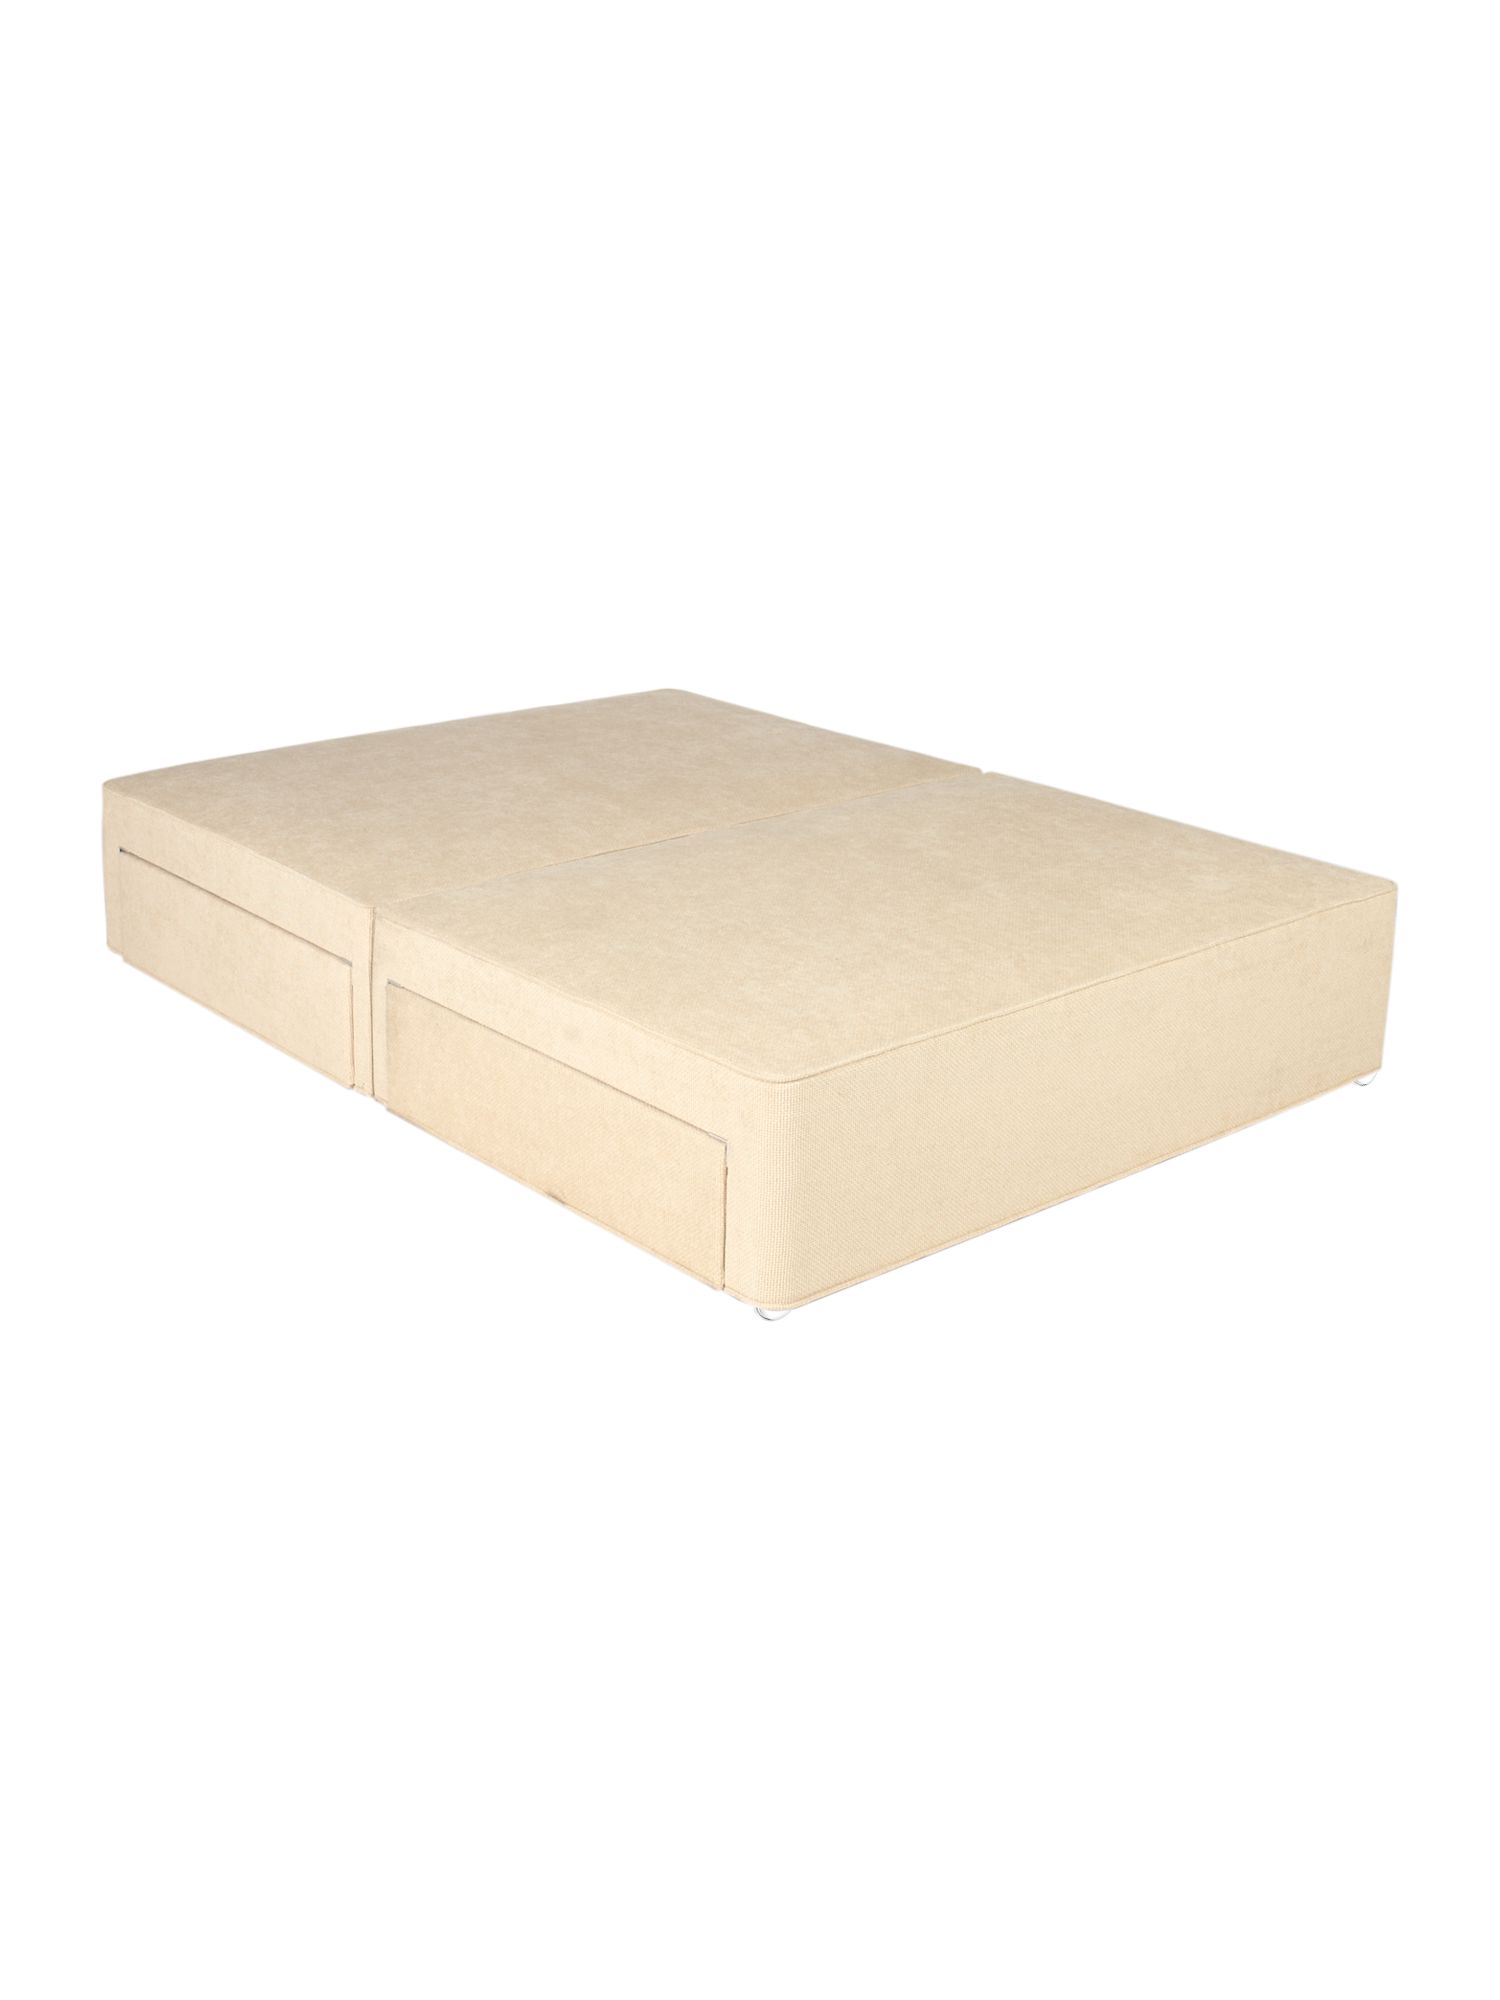 Cream sprung edge divan range 2 drawers